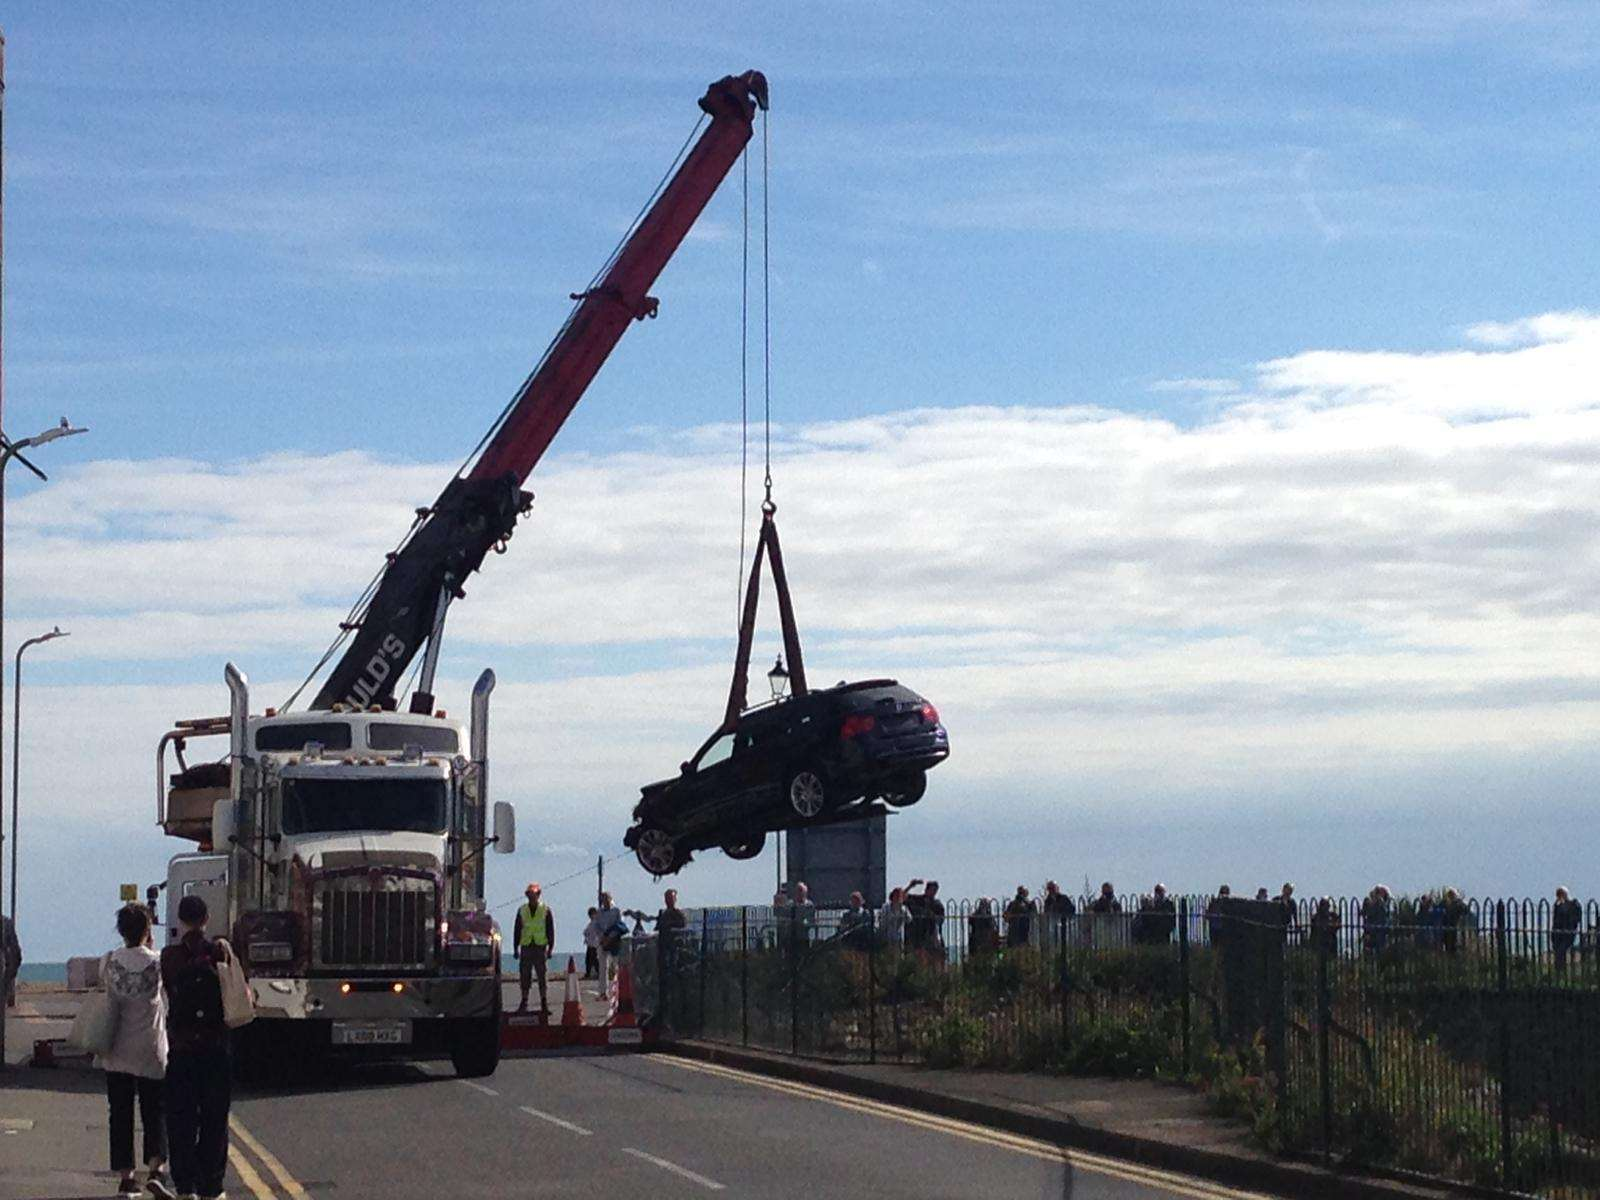 The car was hoisted out by a crane